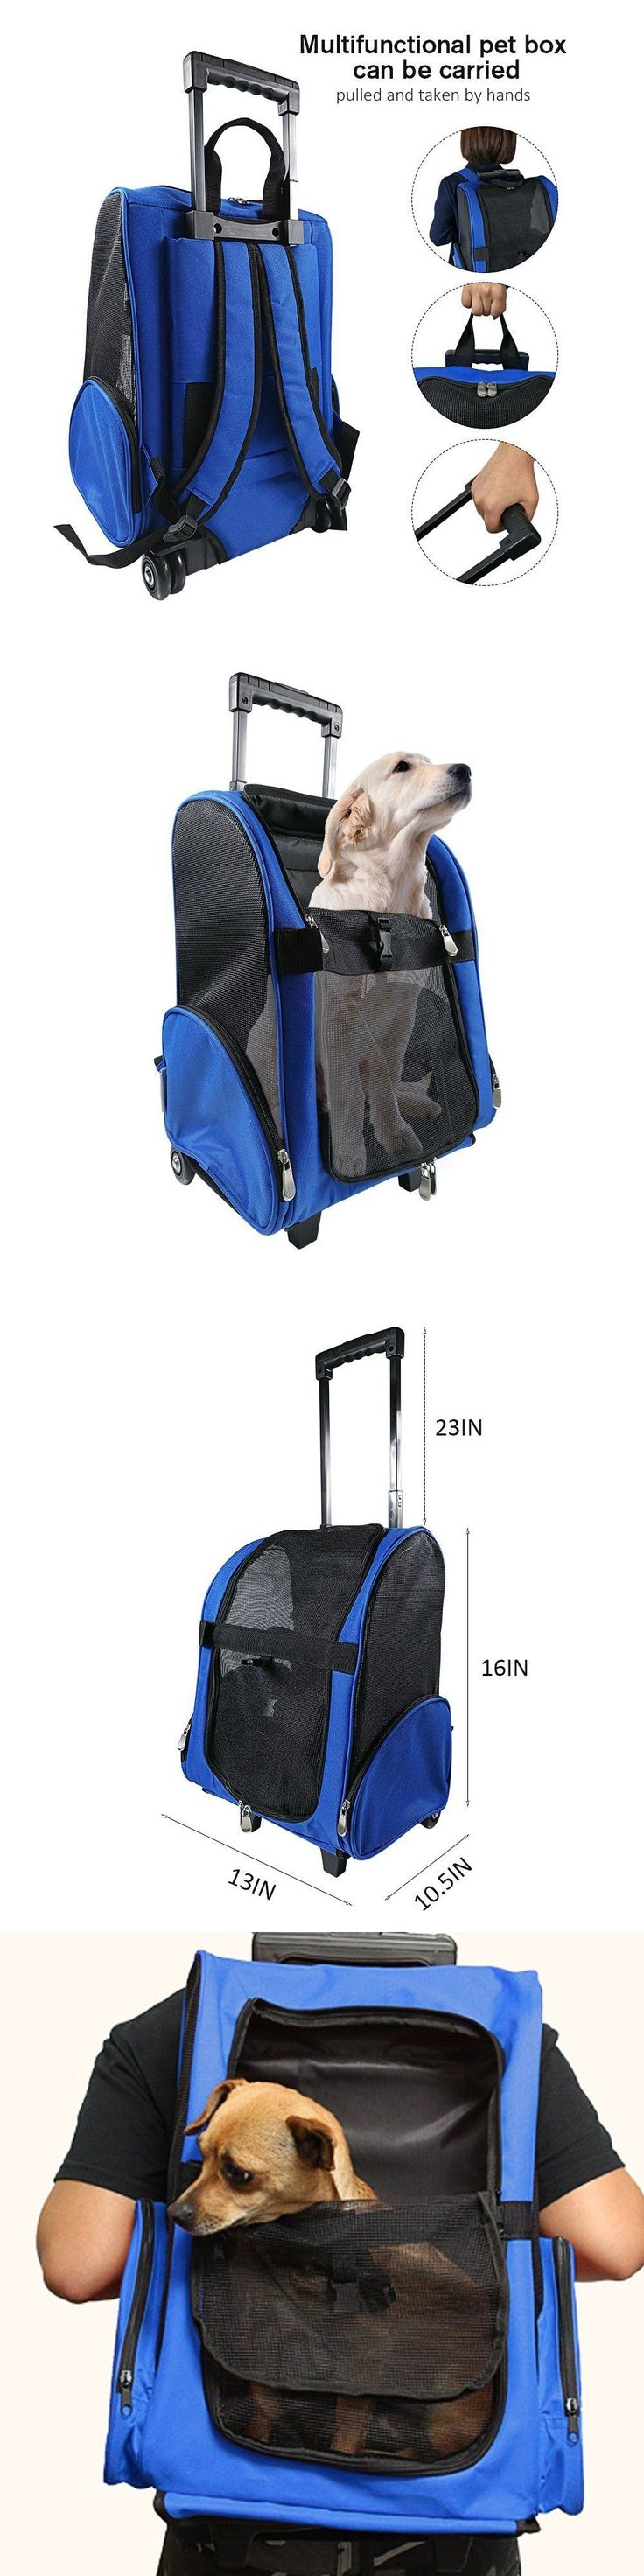 Carriers and Crates 26702: Soft Pet Carrier Rolling Wheels Backpack Airline Approve Mesh Storage Hiking New -> BUY IT NOW ONLY: $49.77 on eBay!